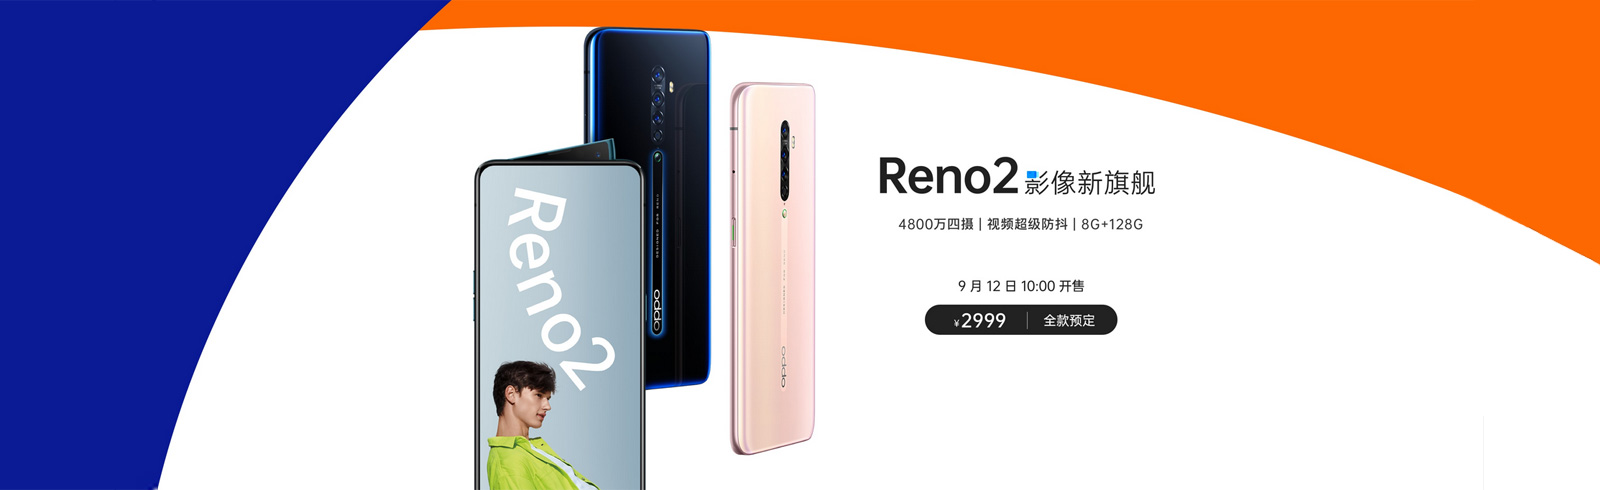 Oppo Reno2 goes on sale in China priced at CNY 2999 (USD 422)